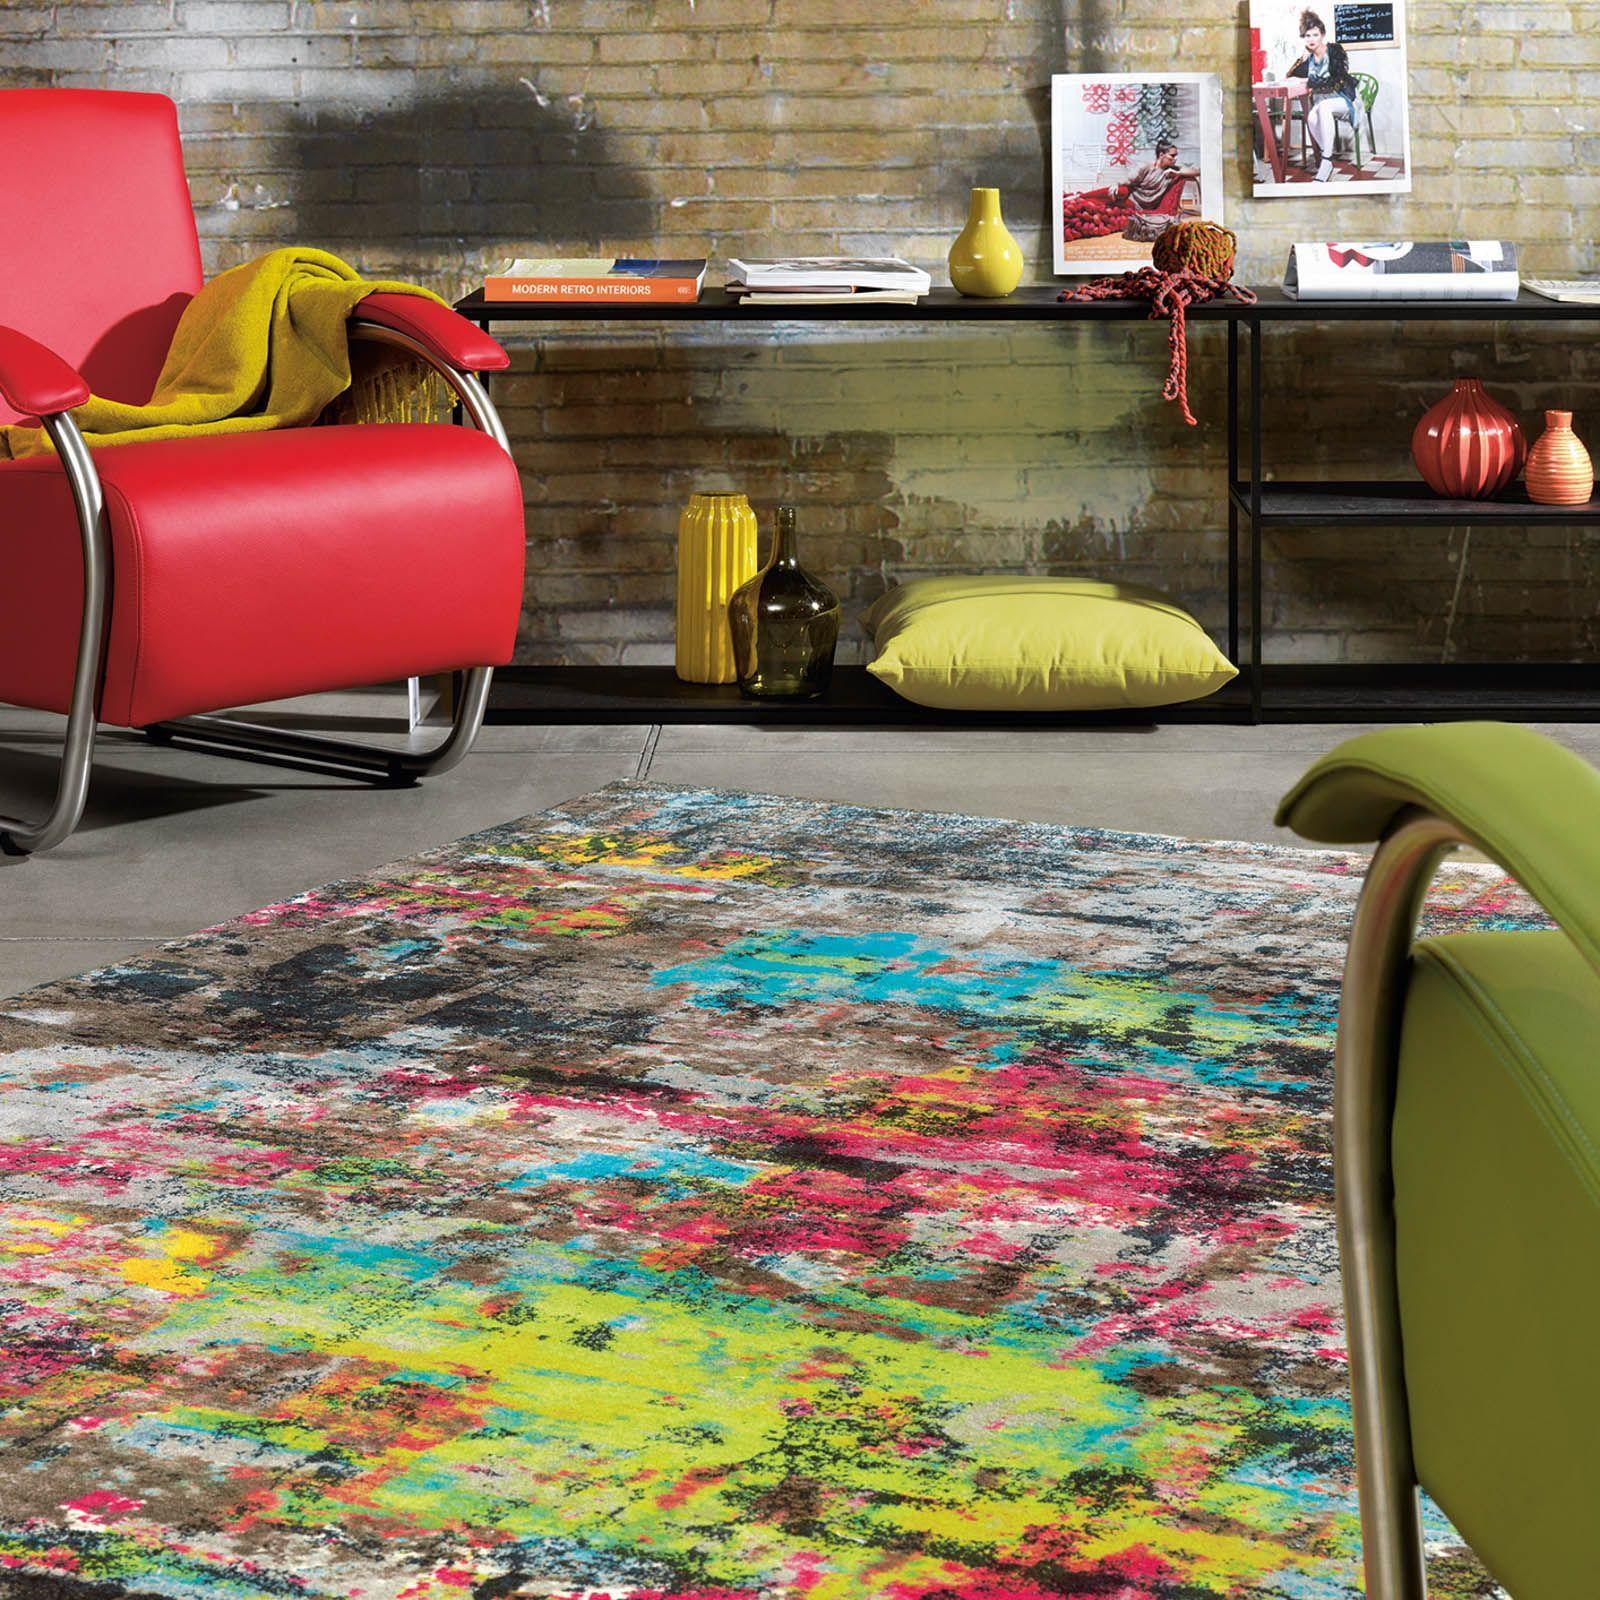 The Action Art Rug by Arte Espina offers an eye catching abstract ...